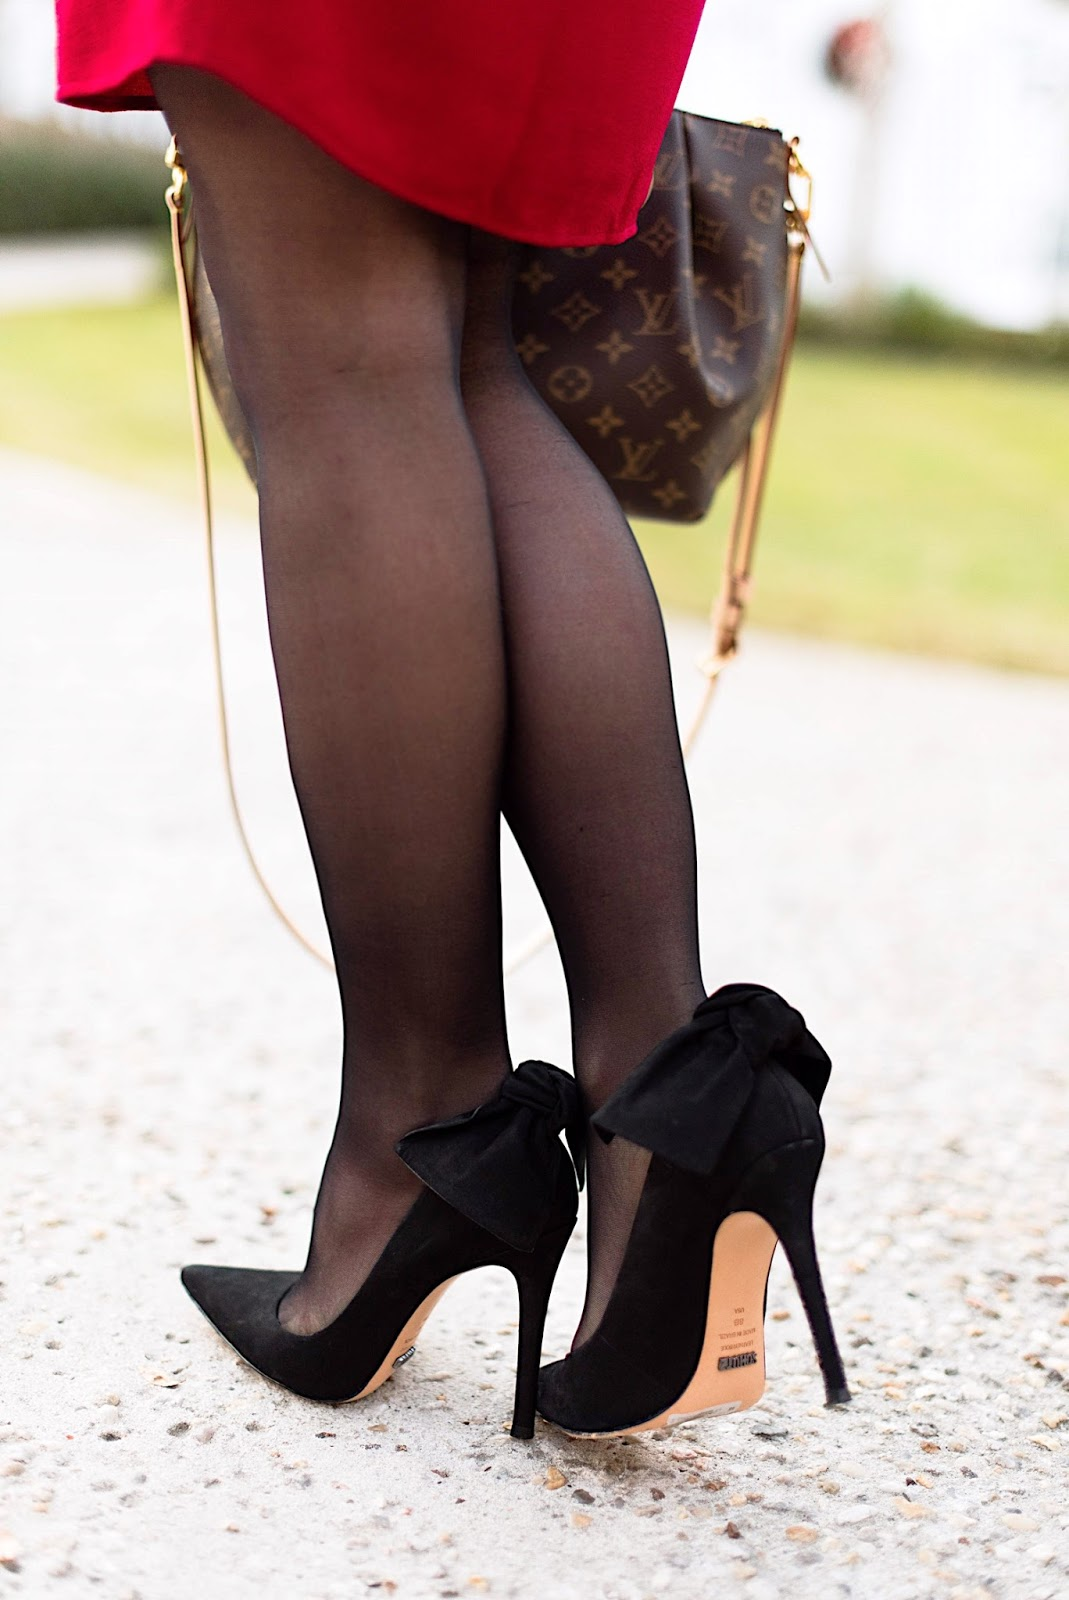 Something Delightful Blog - Bow back pumps